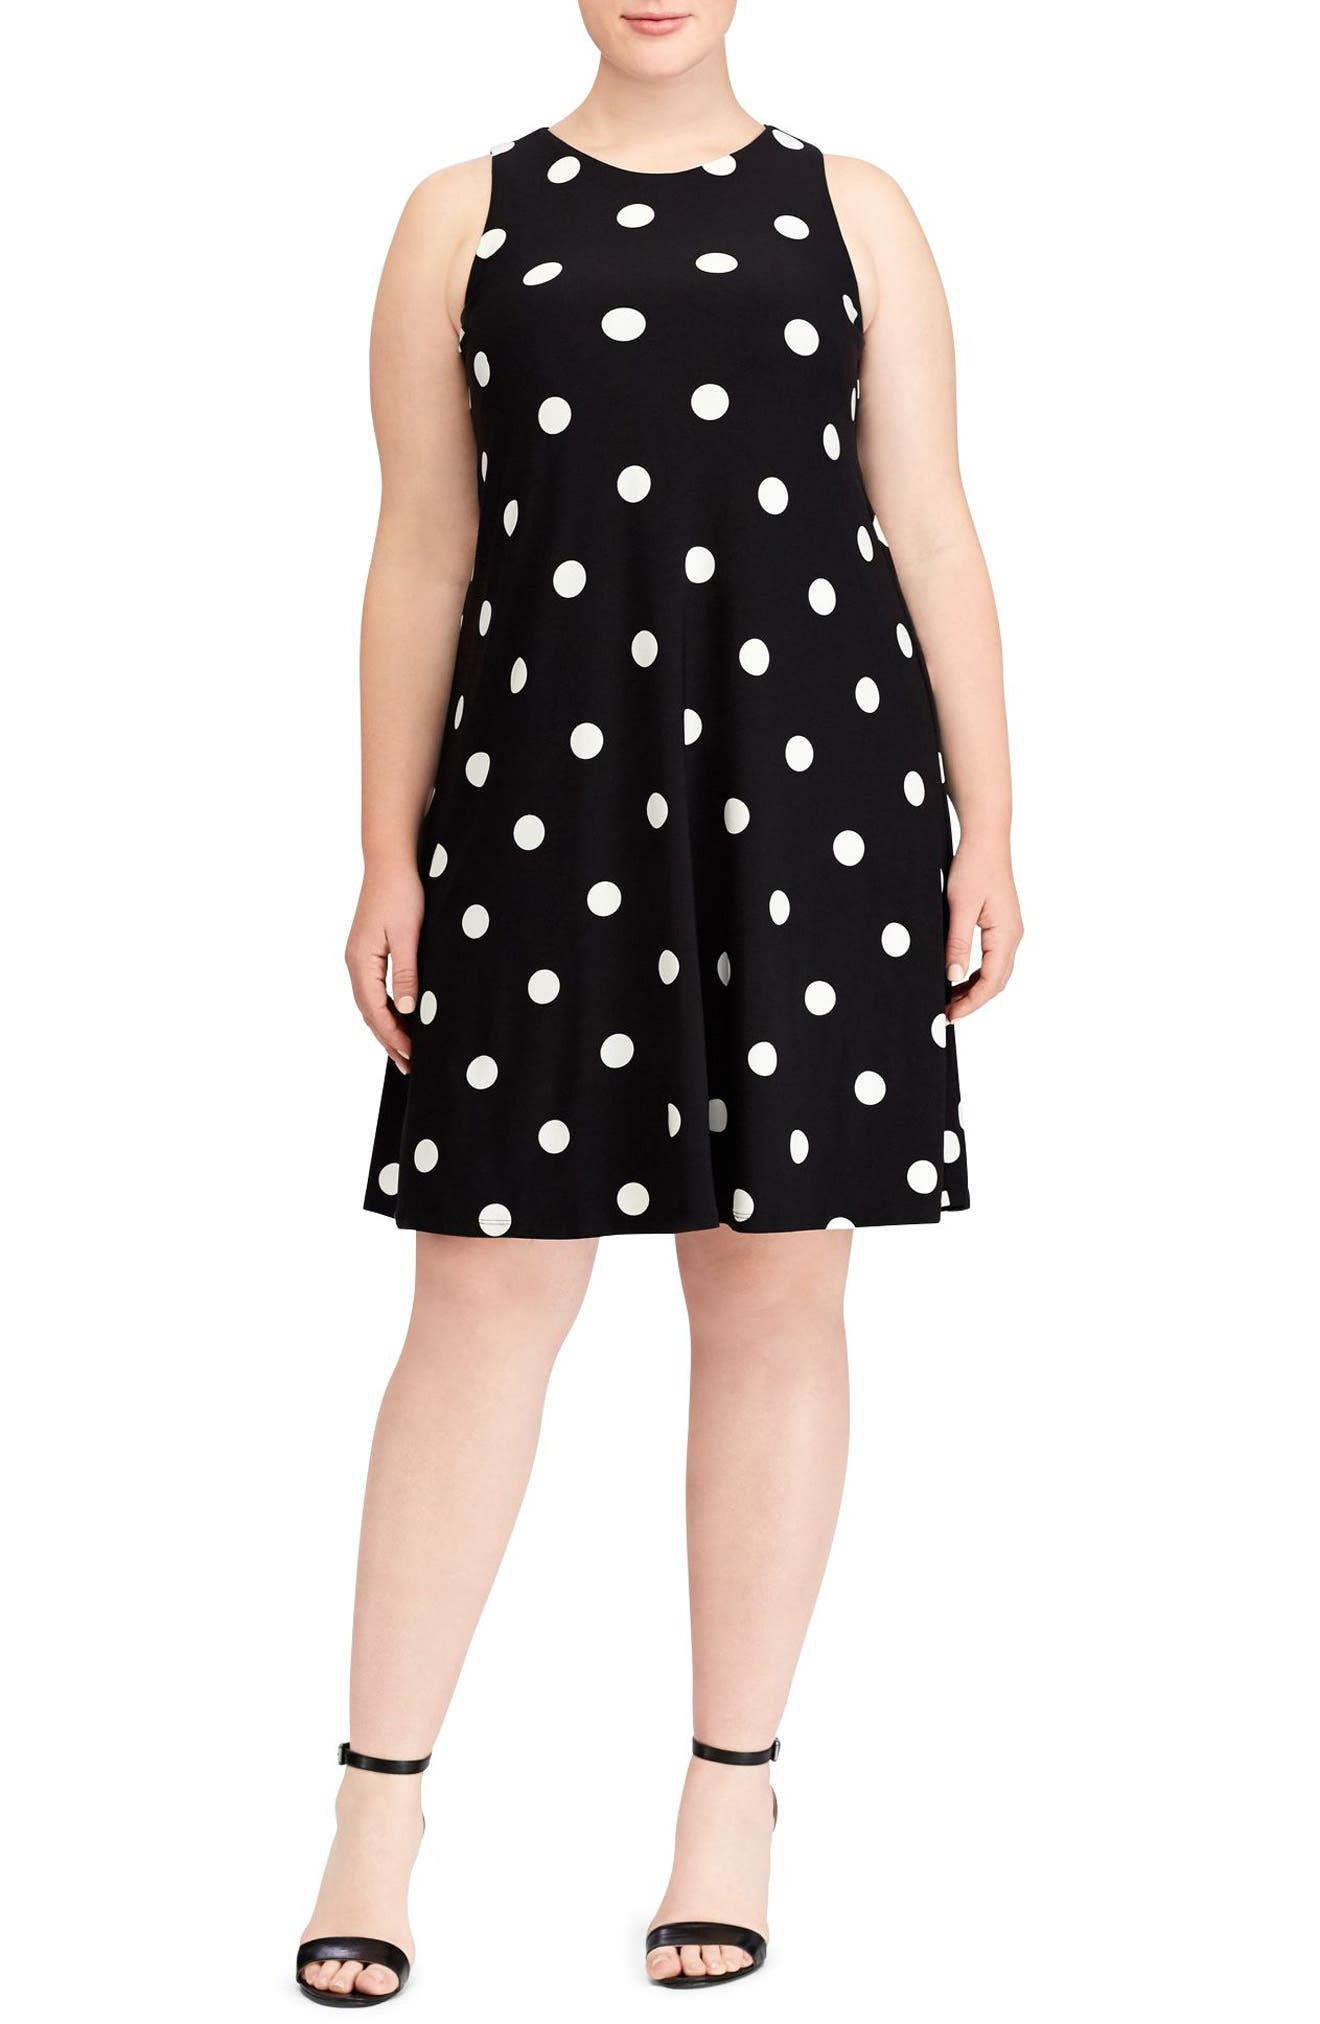 Suzan Peninsula Dot Shift Dress,                         Main,                         color, 001